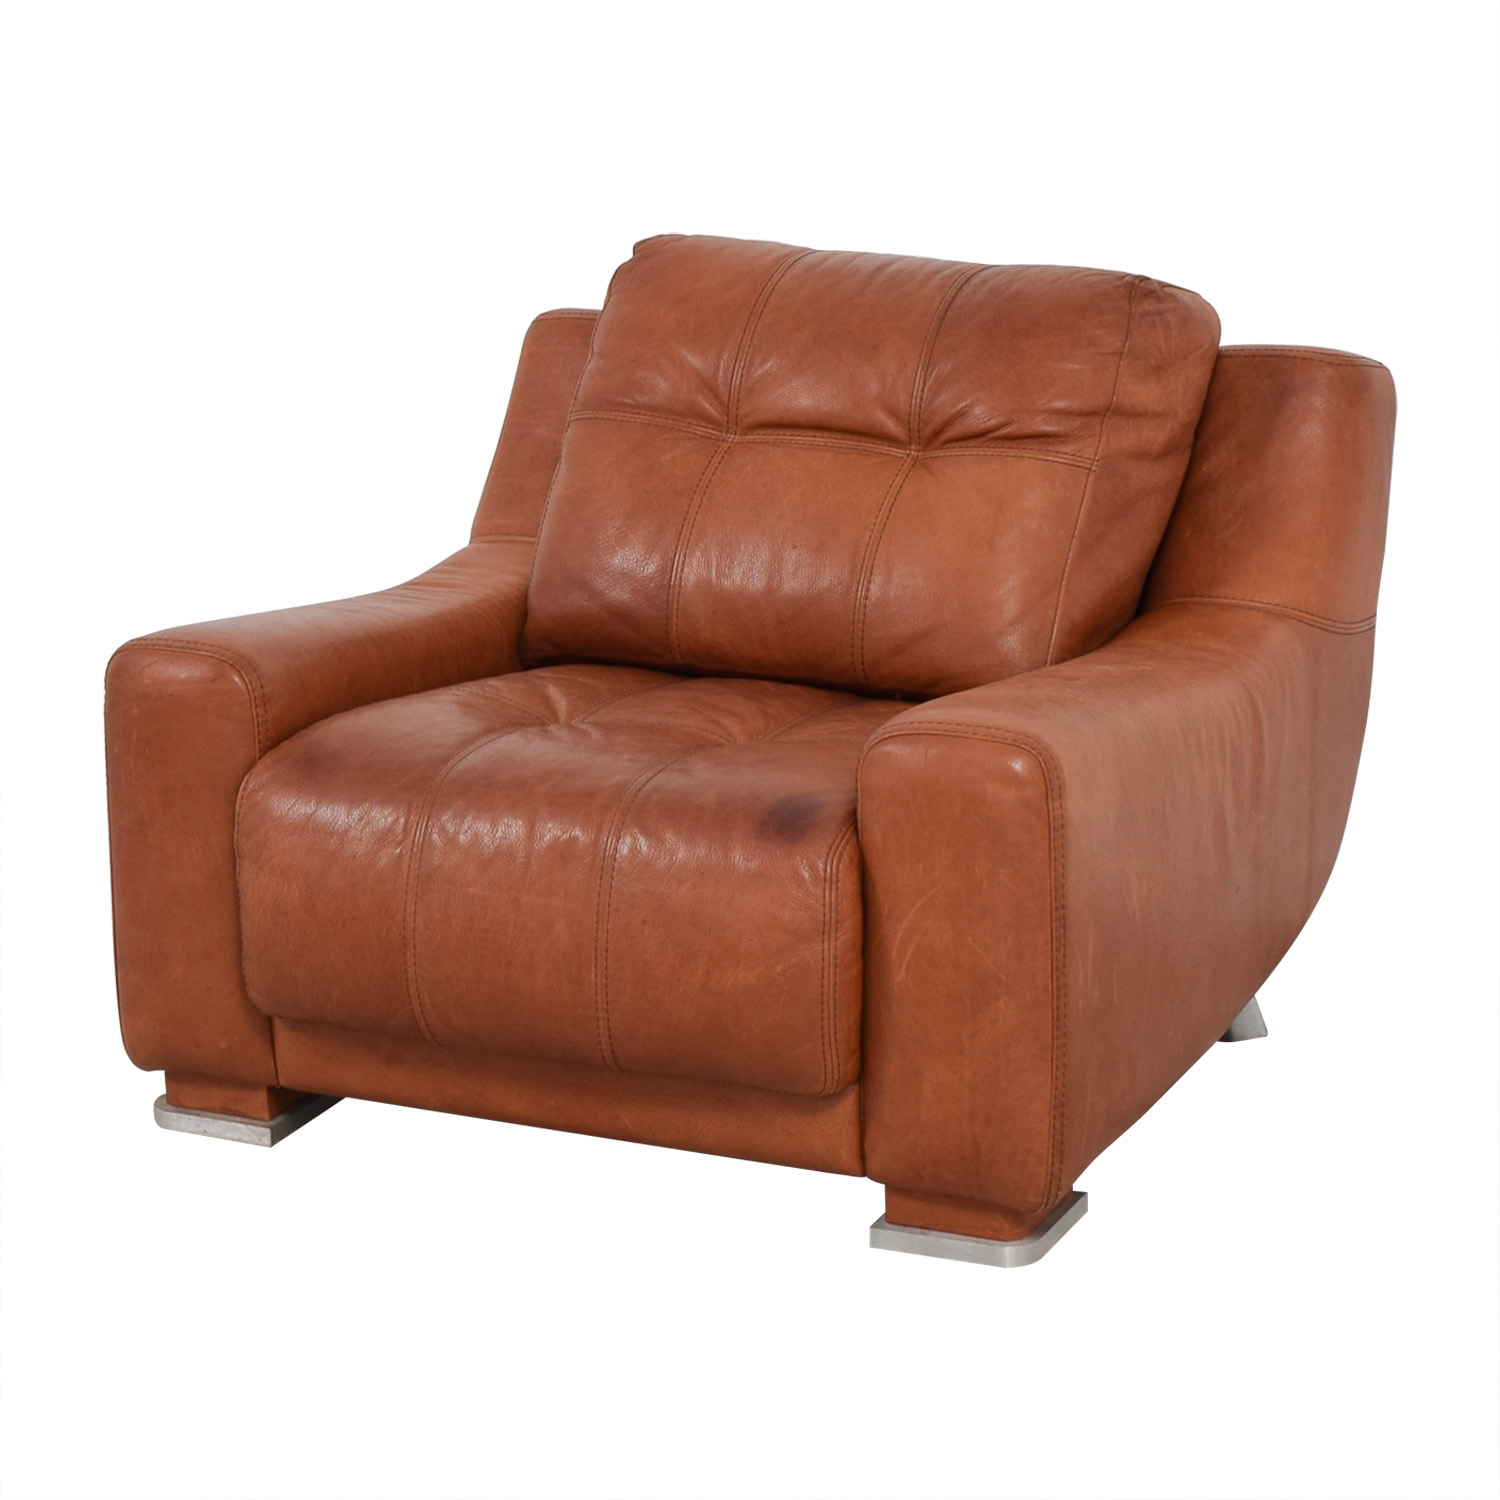 Contempo Contempo Leather Accent Chair Chairs